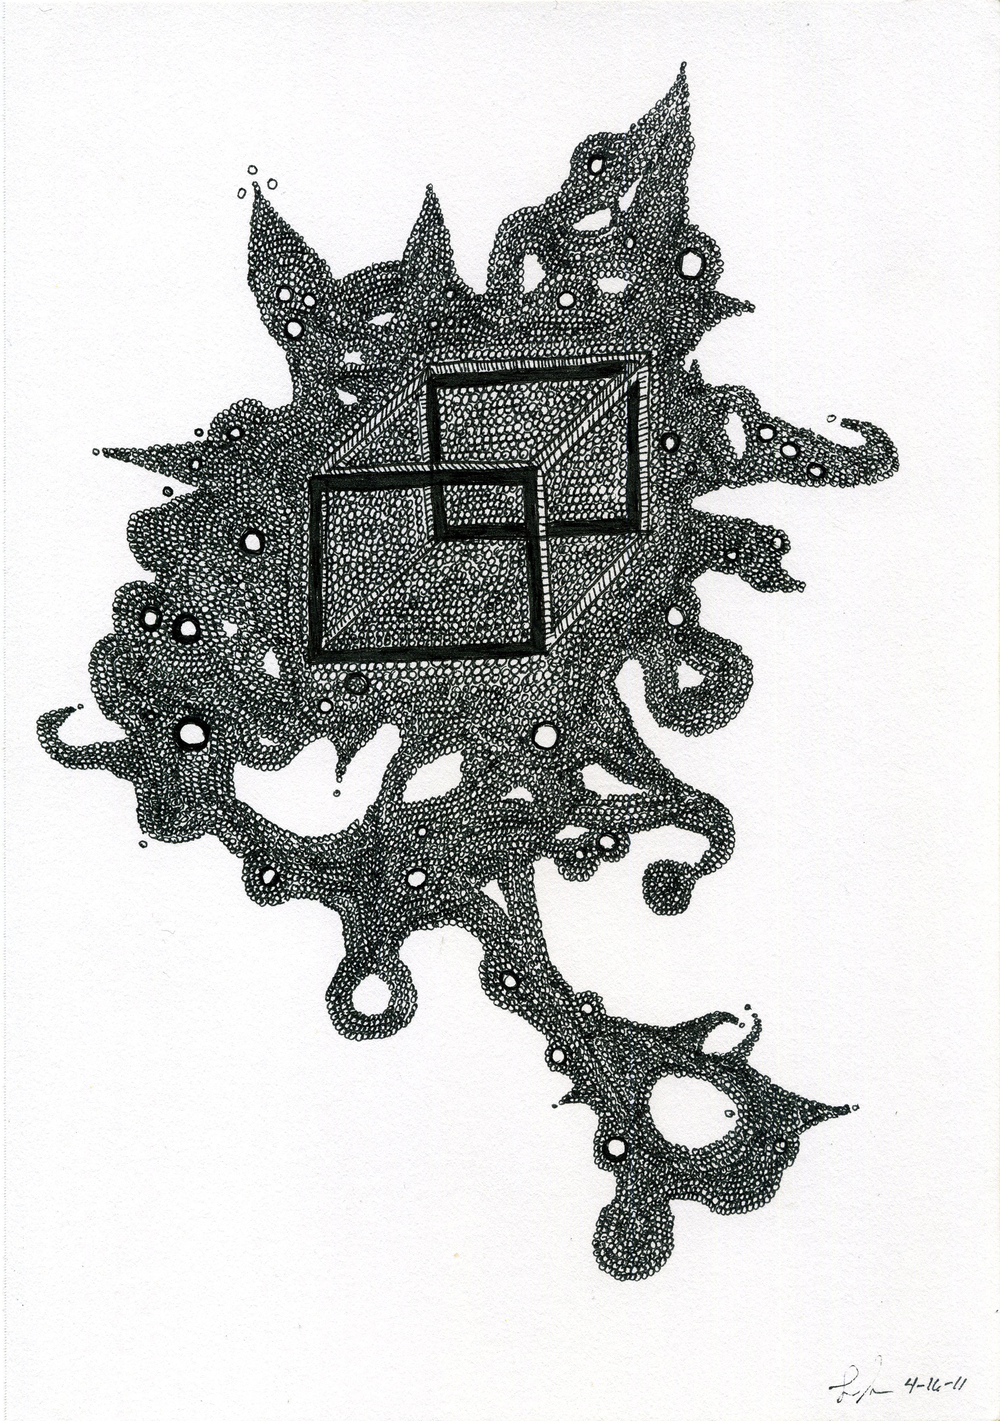 Lauren Sampson    Untitled  , 2011 Ink/paper 10 x 7 inches  /  25.4 x 17.8 cm  /  LaS 4